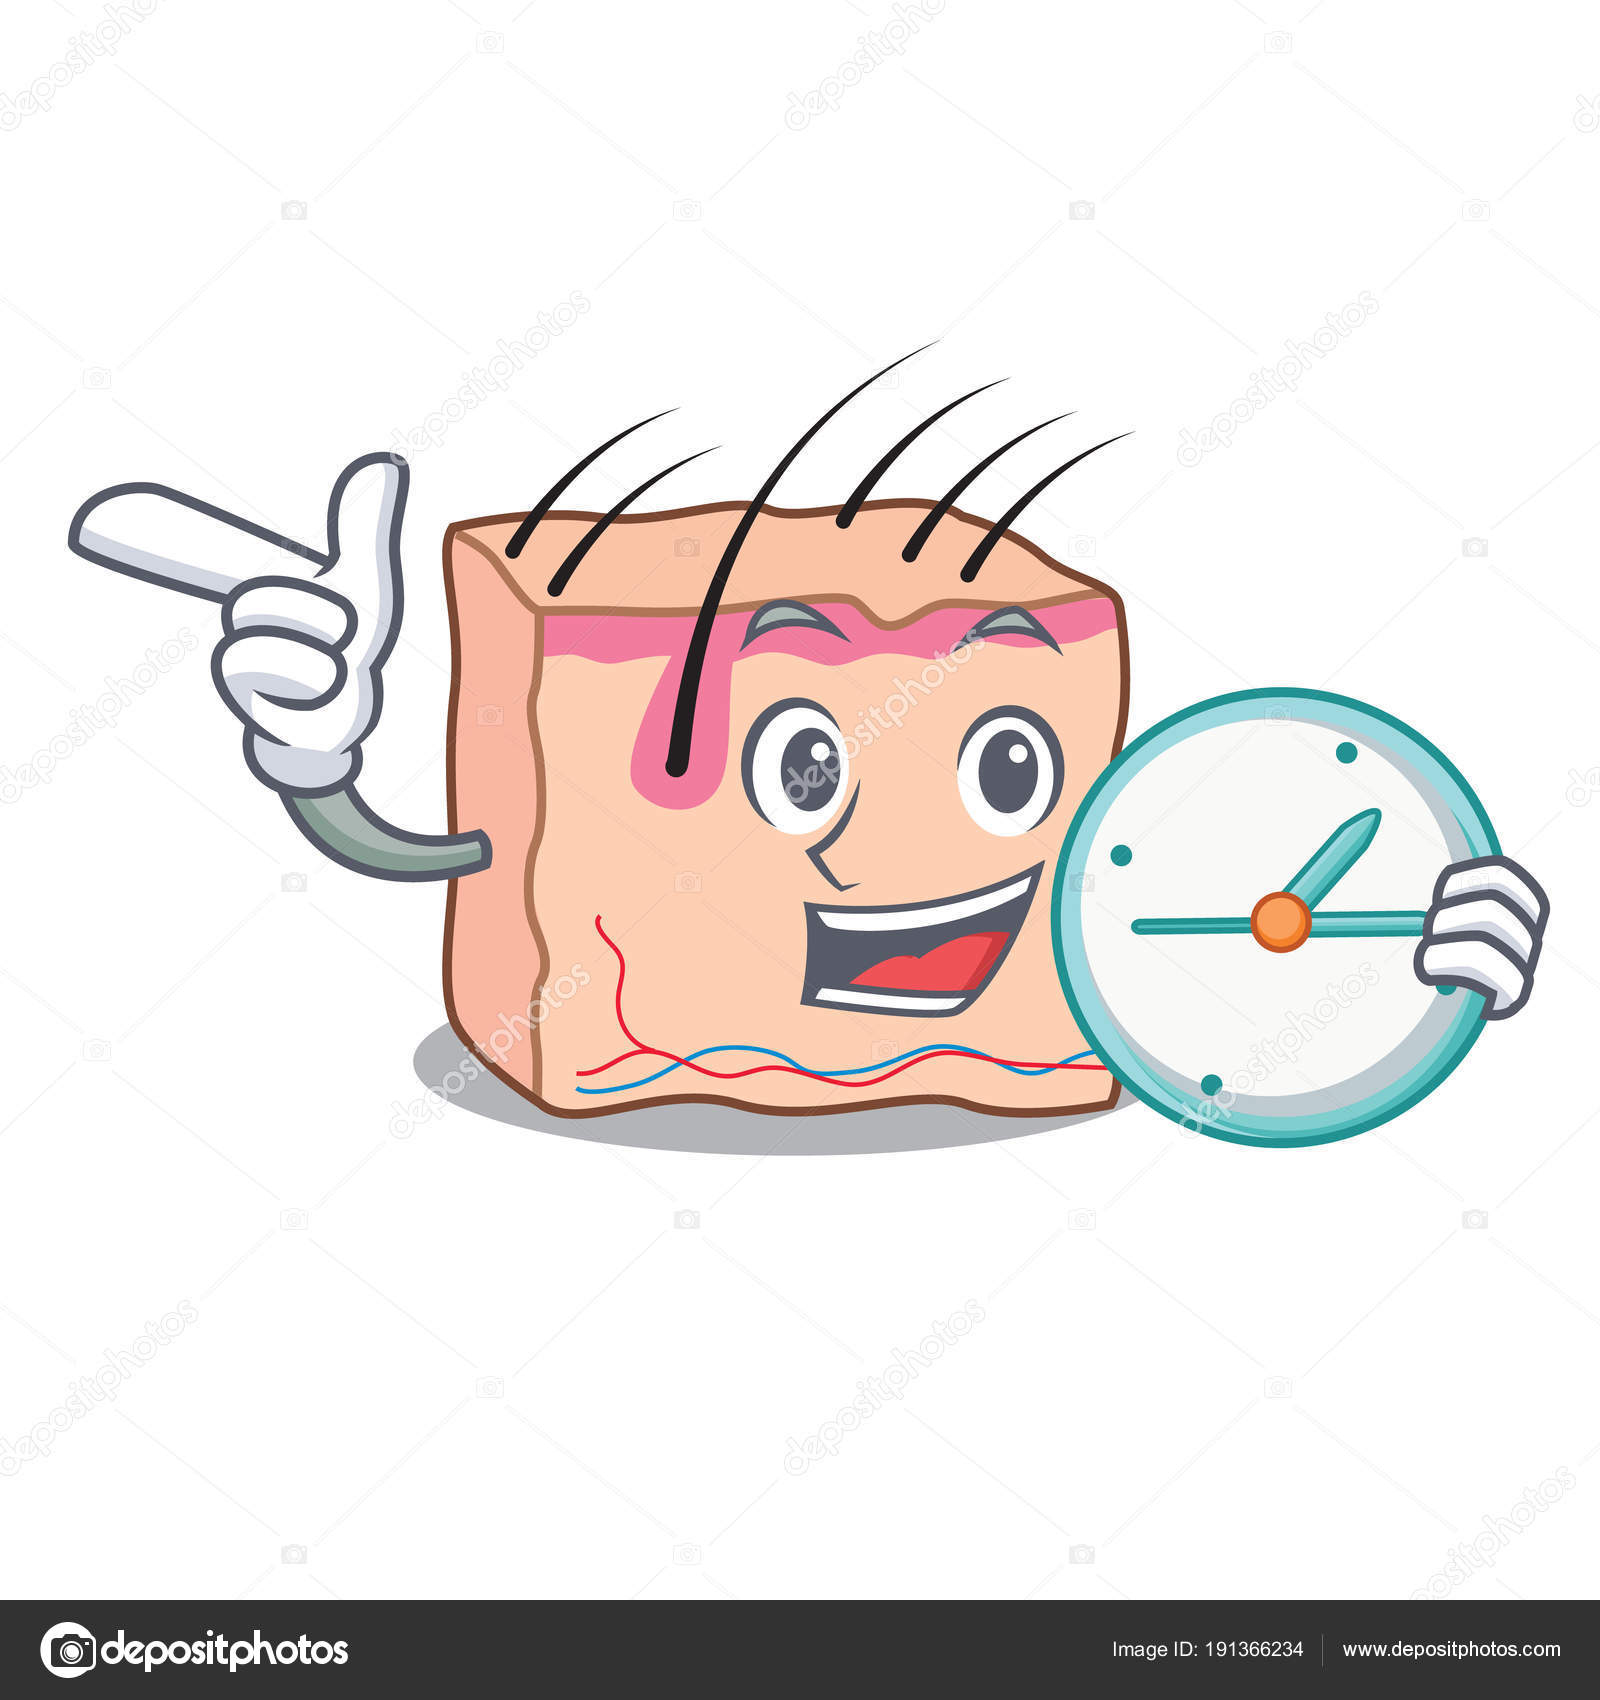 With clock skin character cartoon style — Stock Vector